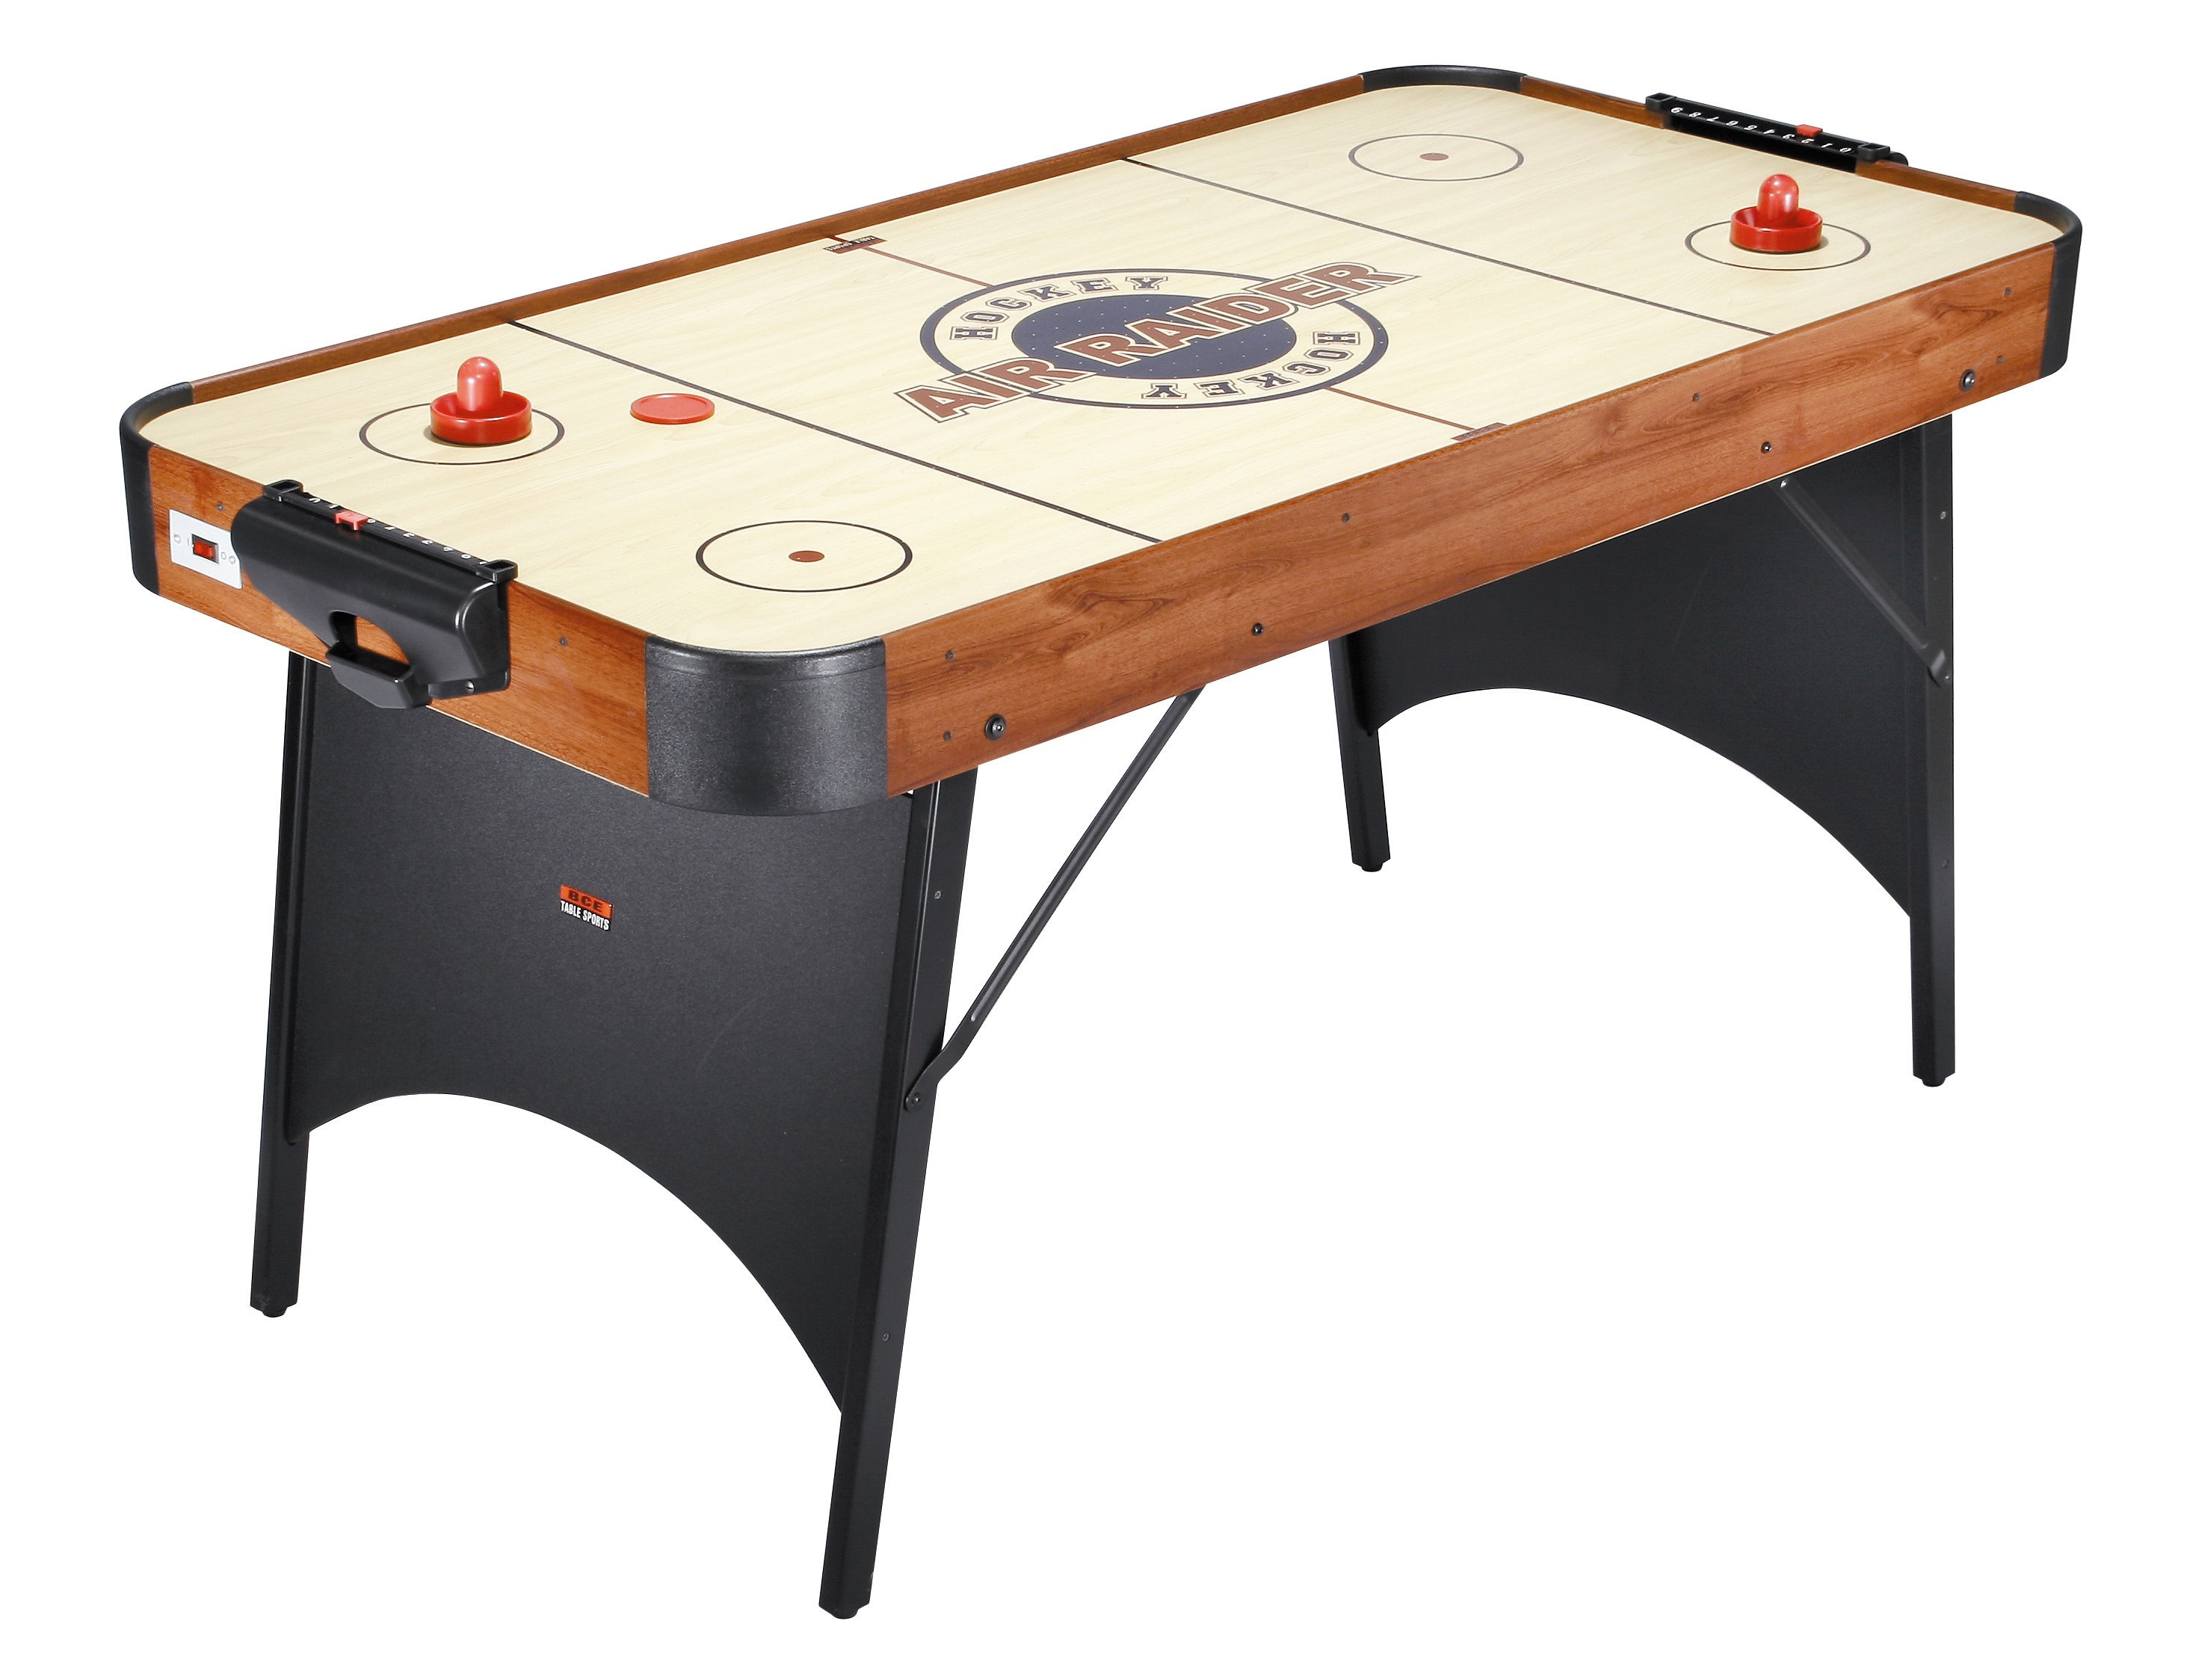 9 Foot Folding Table picture on air raider 5ft air hockey ah10 4 with 9 Foot Folding Table, Folding Table c13af27eb505ccbf137a70722b7dc47a